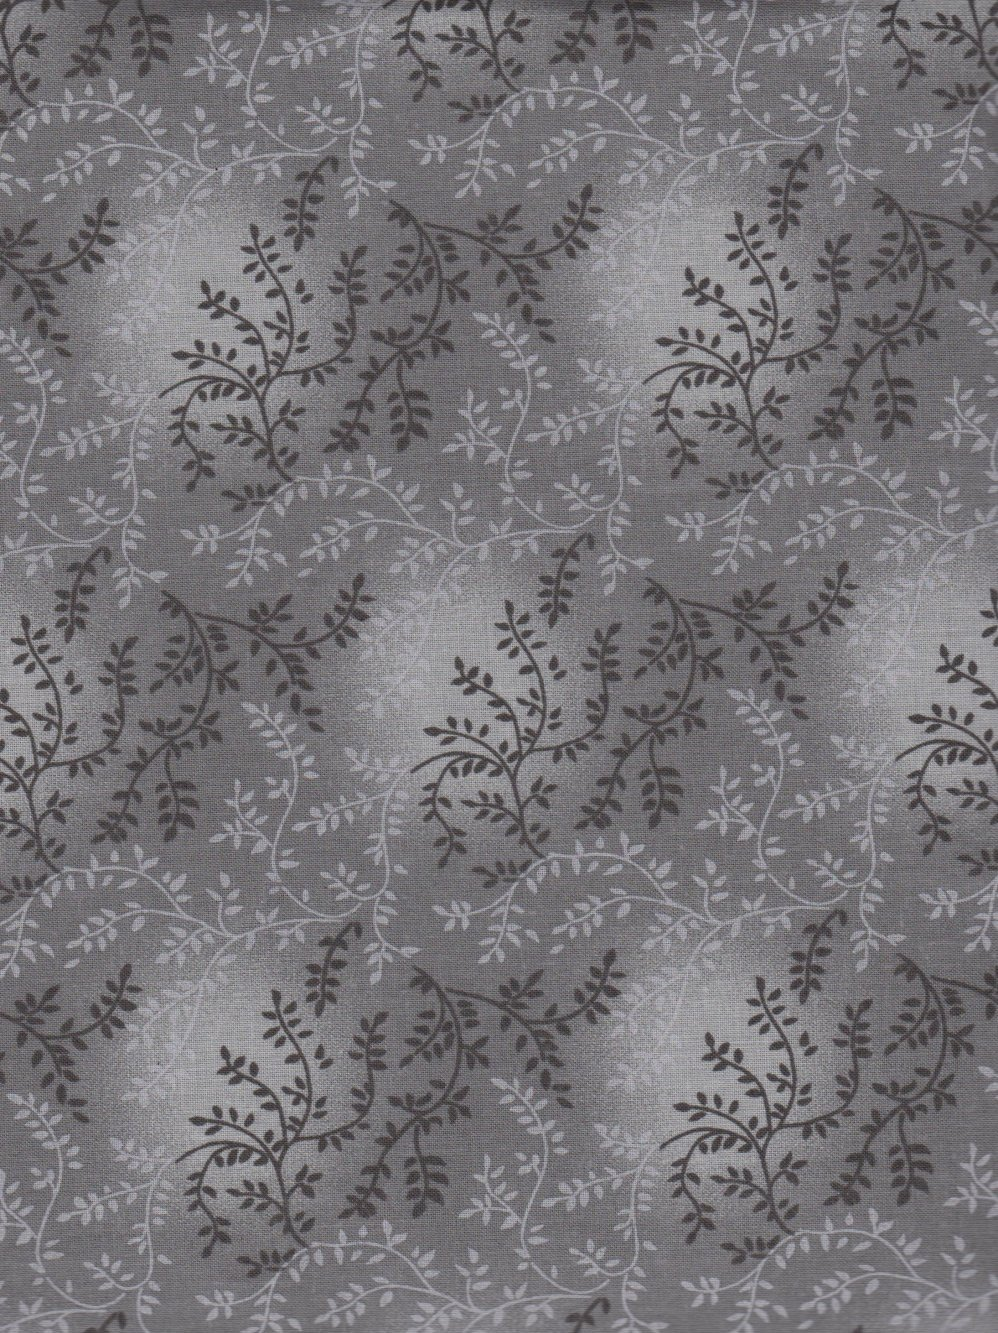 Tonal Vineyard 108 47603-806 Grey